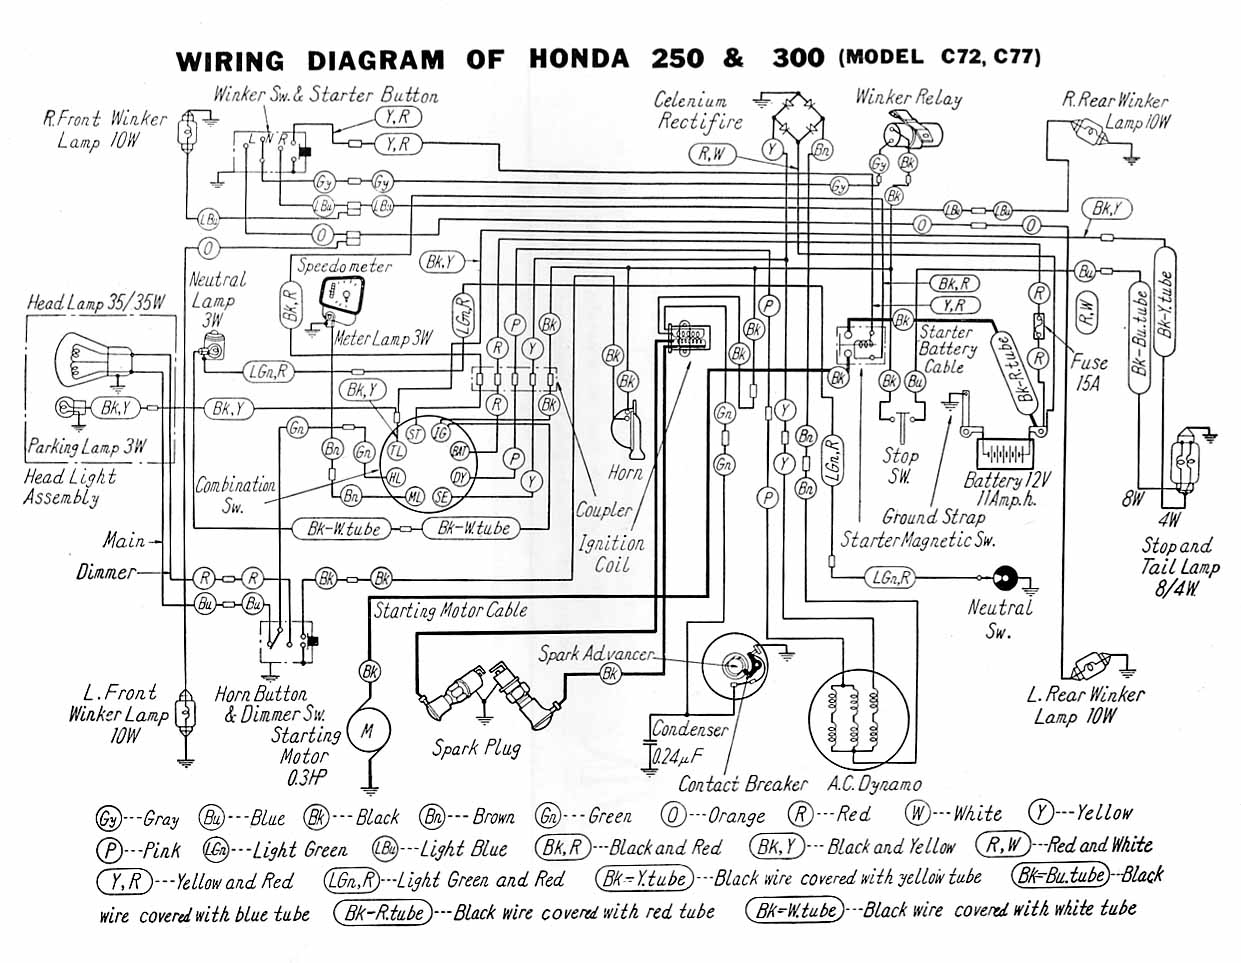 shovelhead chopper wiring diagram rack software open source diagrams c77 jpg